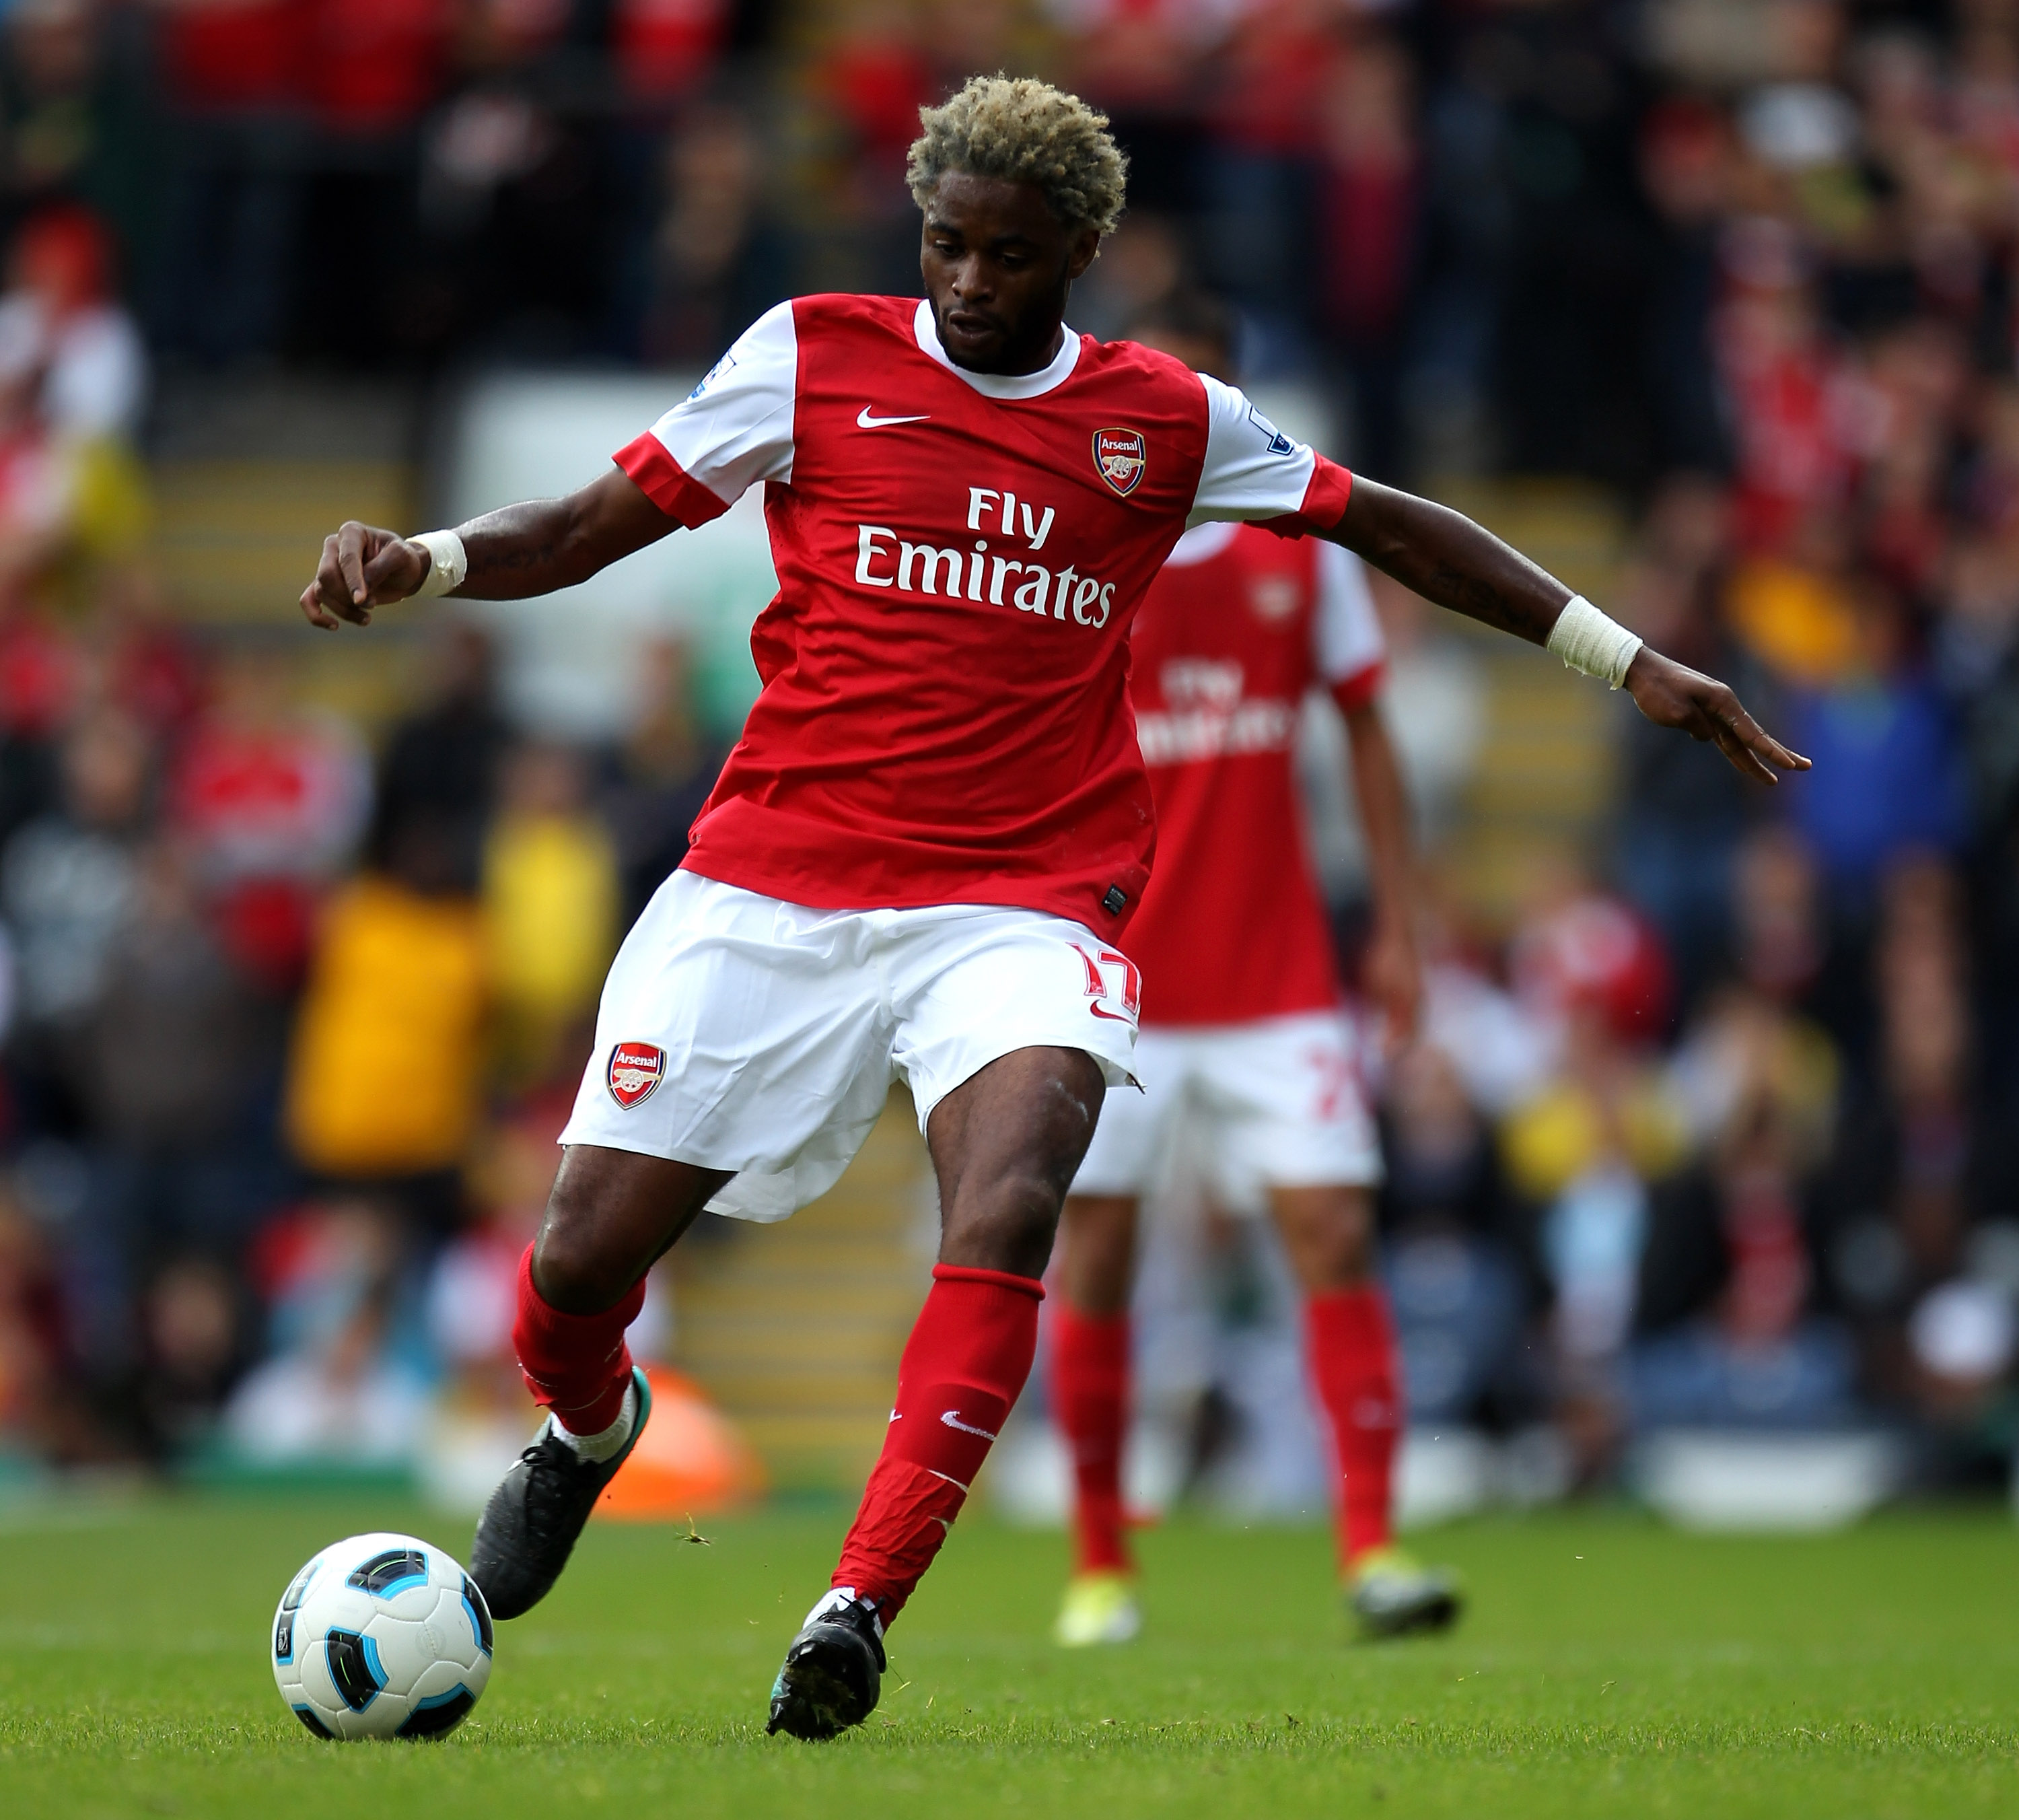 BLACKBURN, ENGLAND - AUGUST 28:  Alexandre Song of Arsenal in action during the Barclays Premier League match between Blackburn Rovers and Arsenal at Ewood Park on August 28, 2010 in Blackburn, England.  (Photo by Alex Livesey/Getty Images)